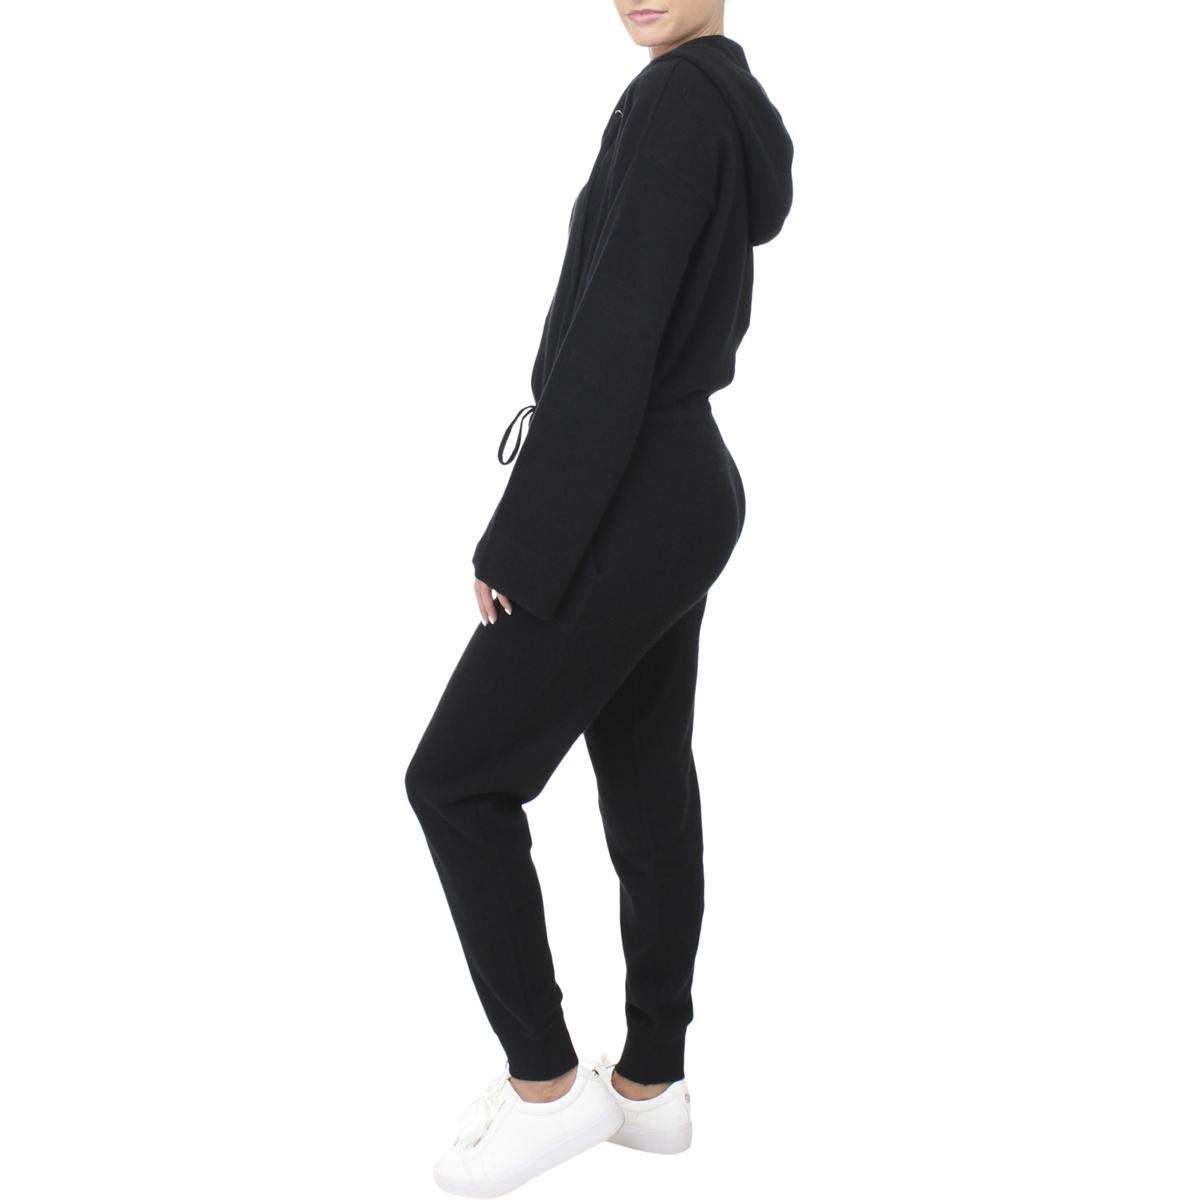 60ada8cac15 Juicy Couture Black Label Womens Cashmere Hooded Jumpsuit Black XS  Amazon. co.uk  Clothing